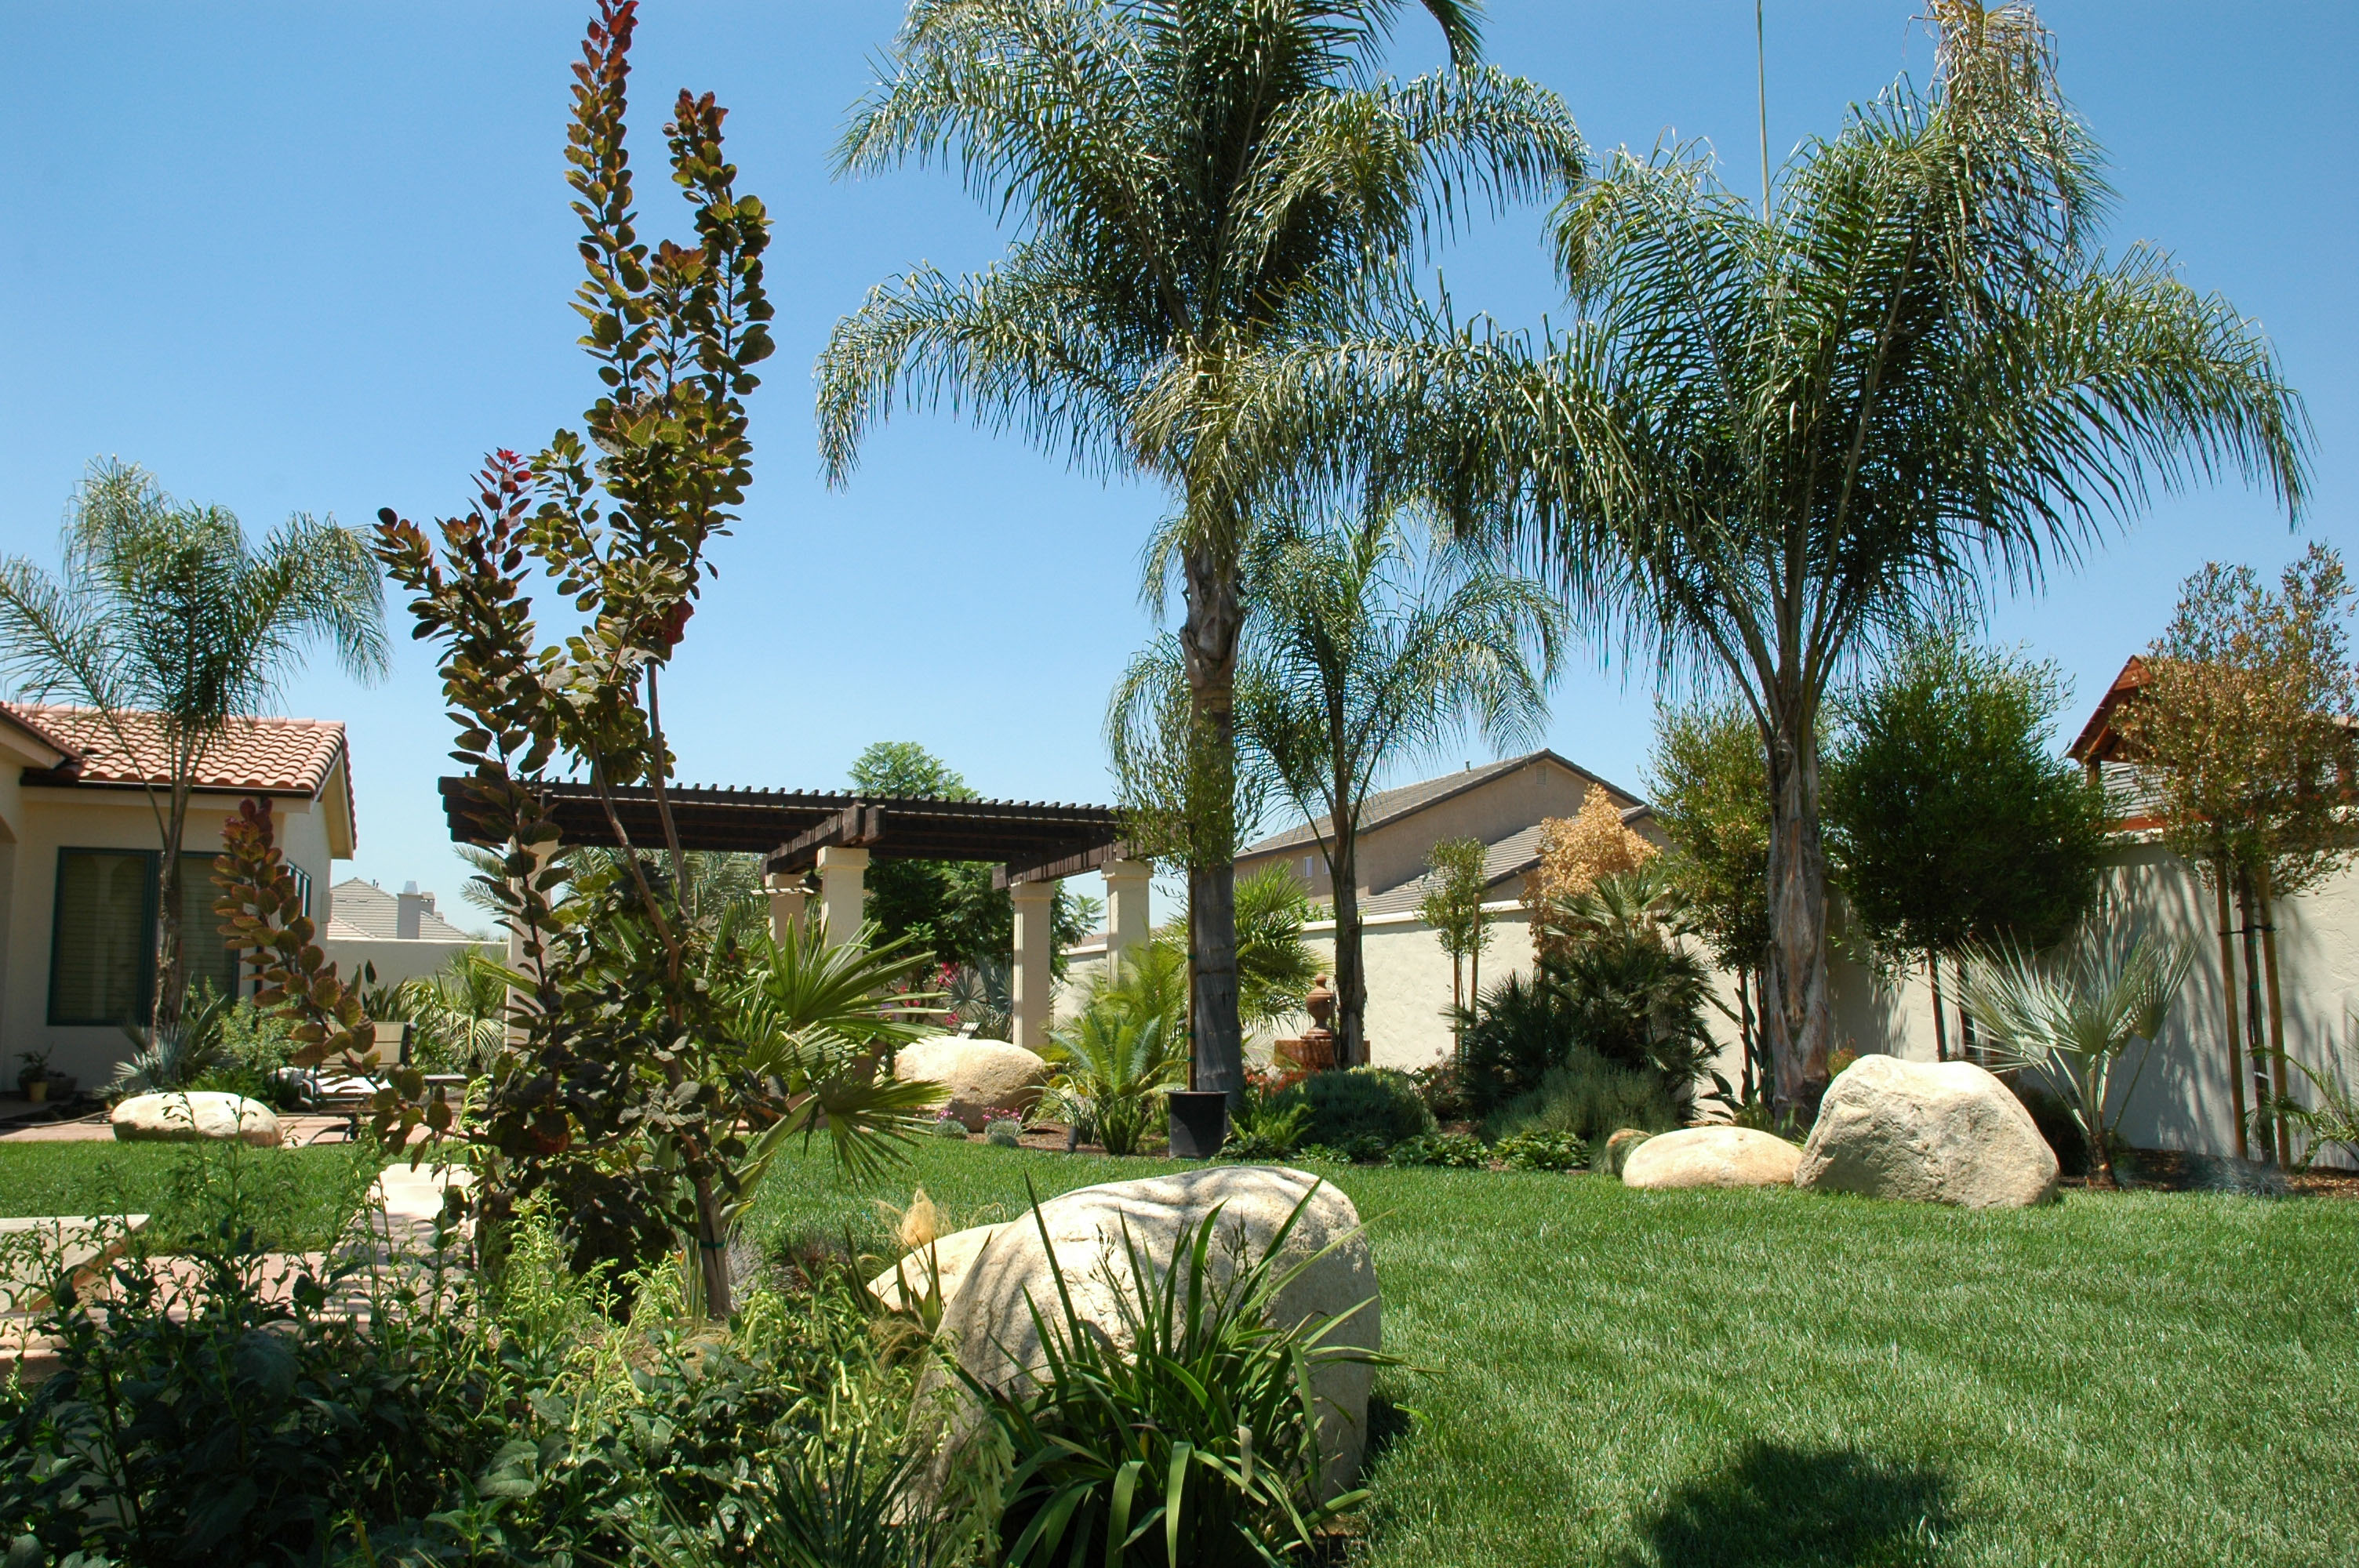 Palms and Boulders in Backyard Landscape